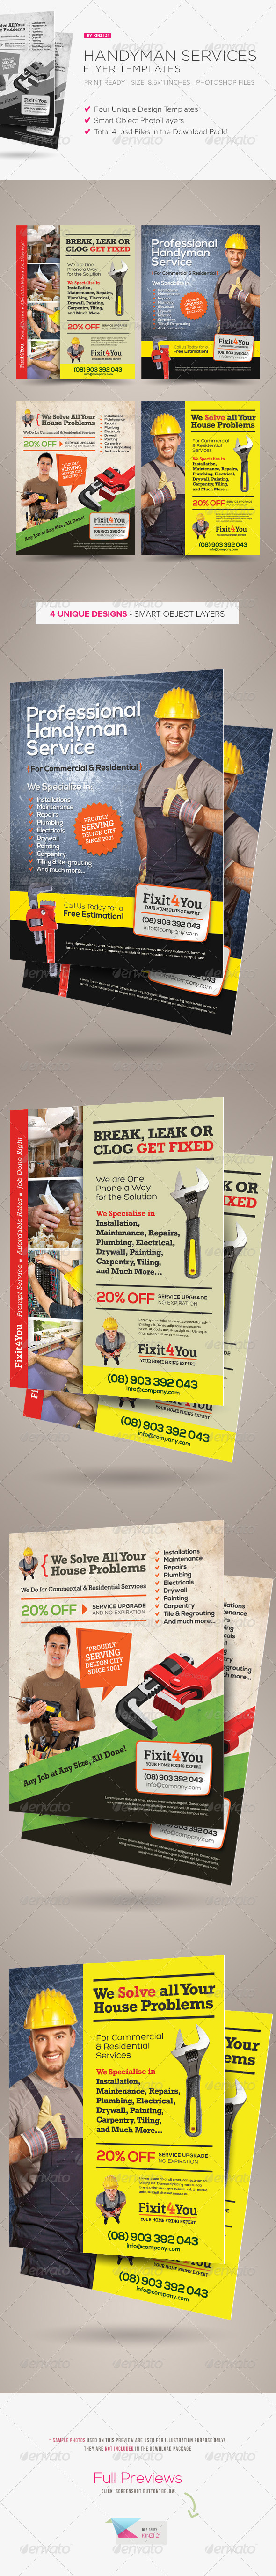 GraphicRiver Handyman Services Flyers 5819527